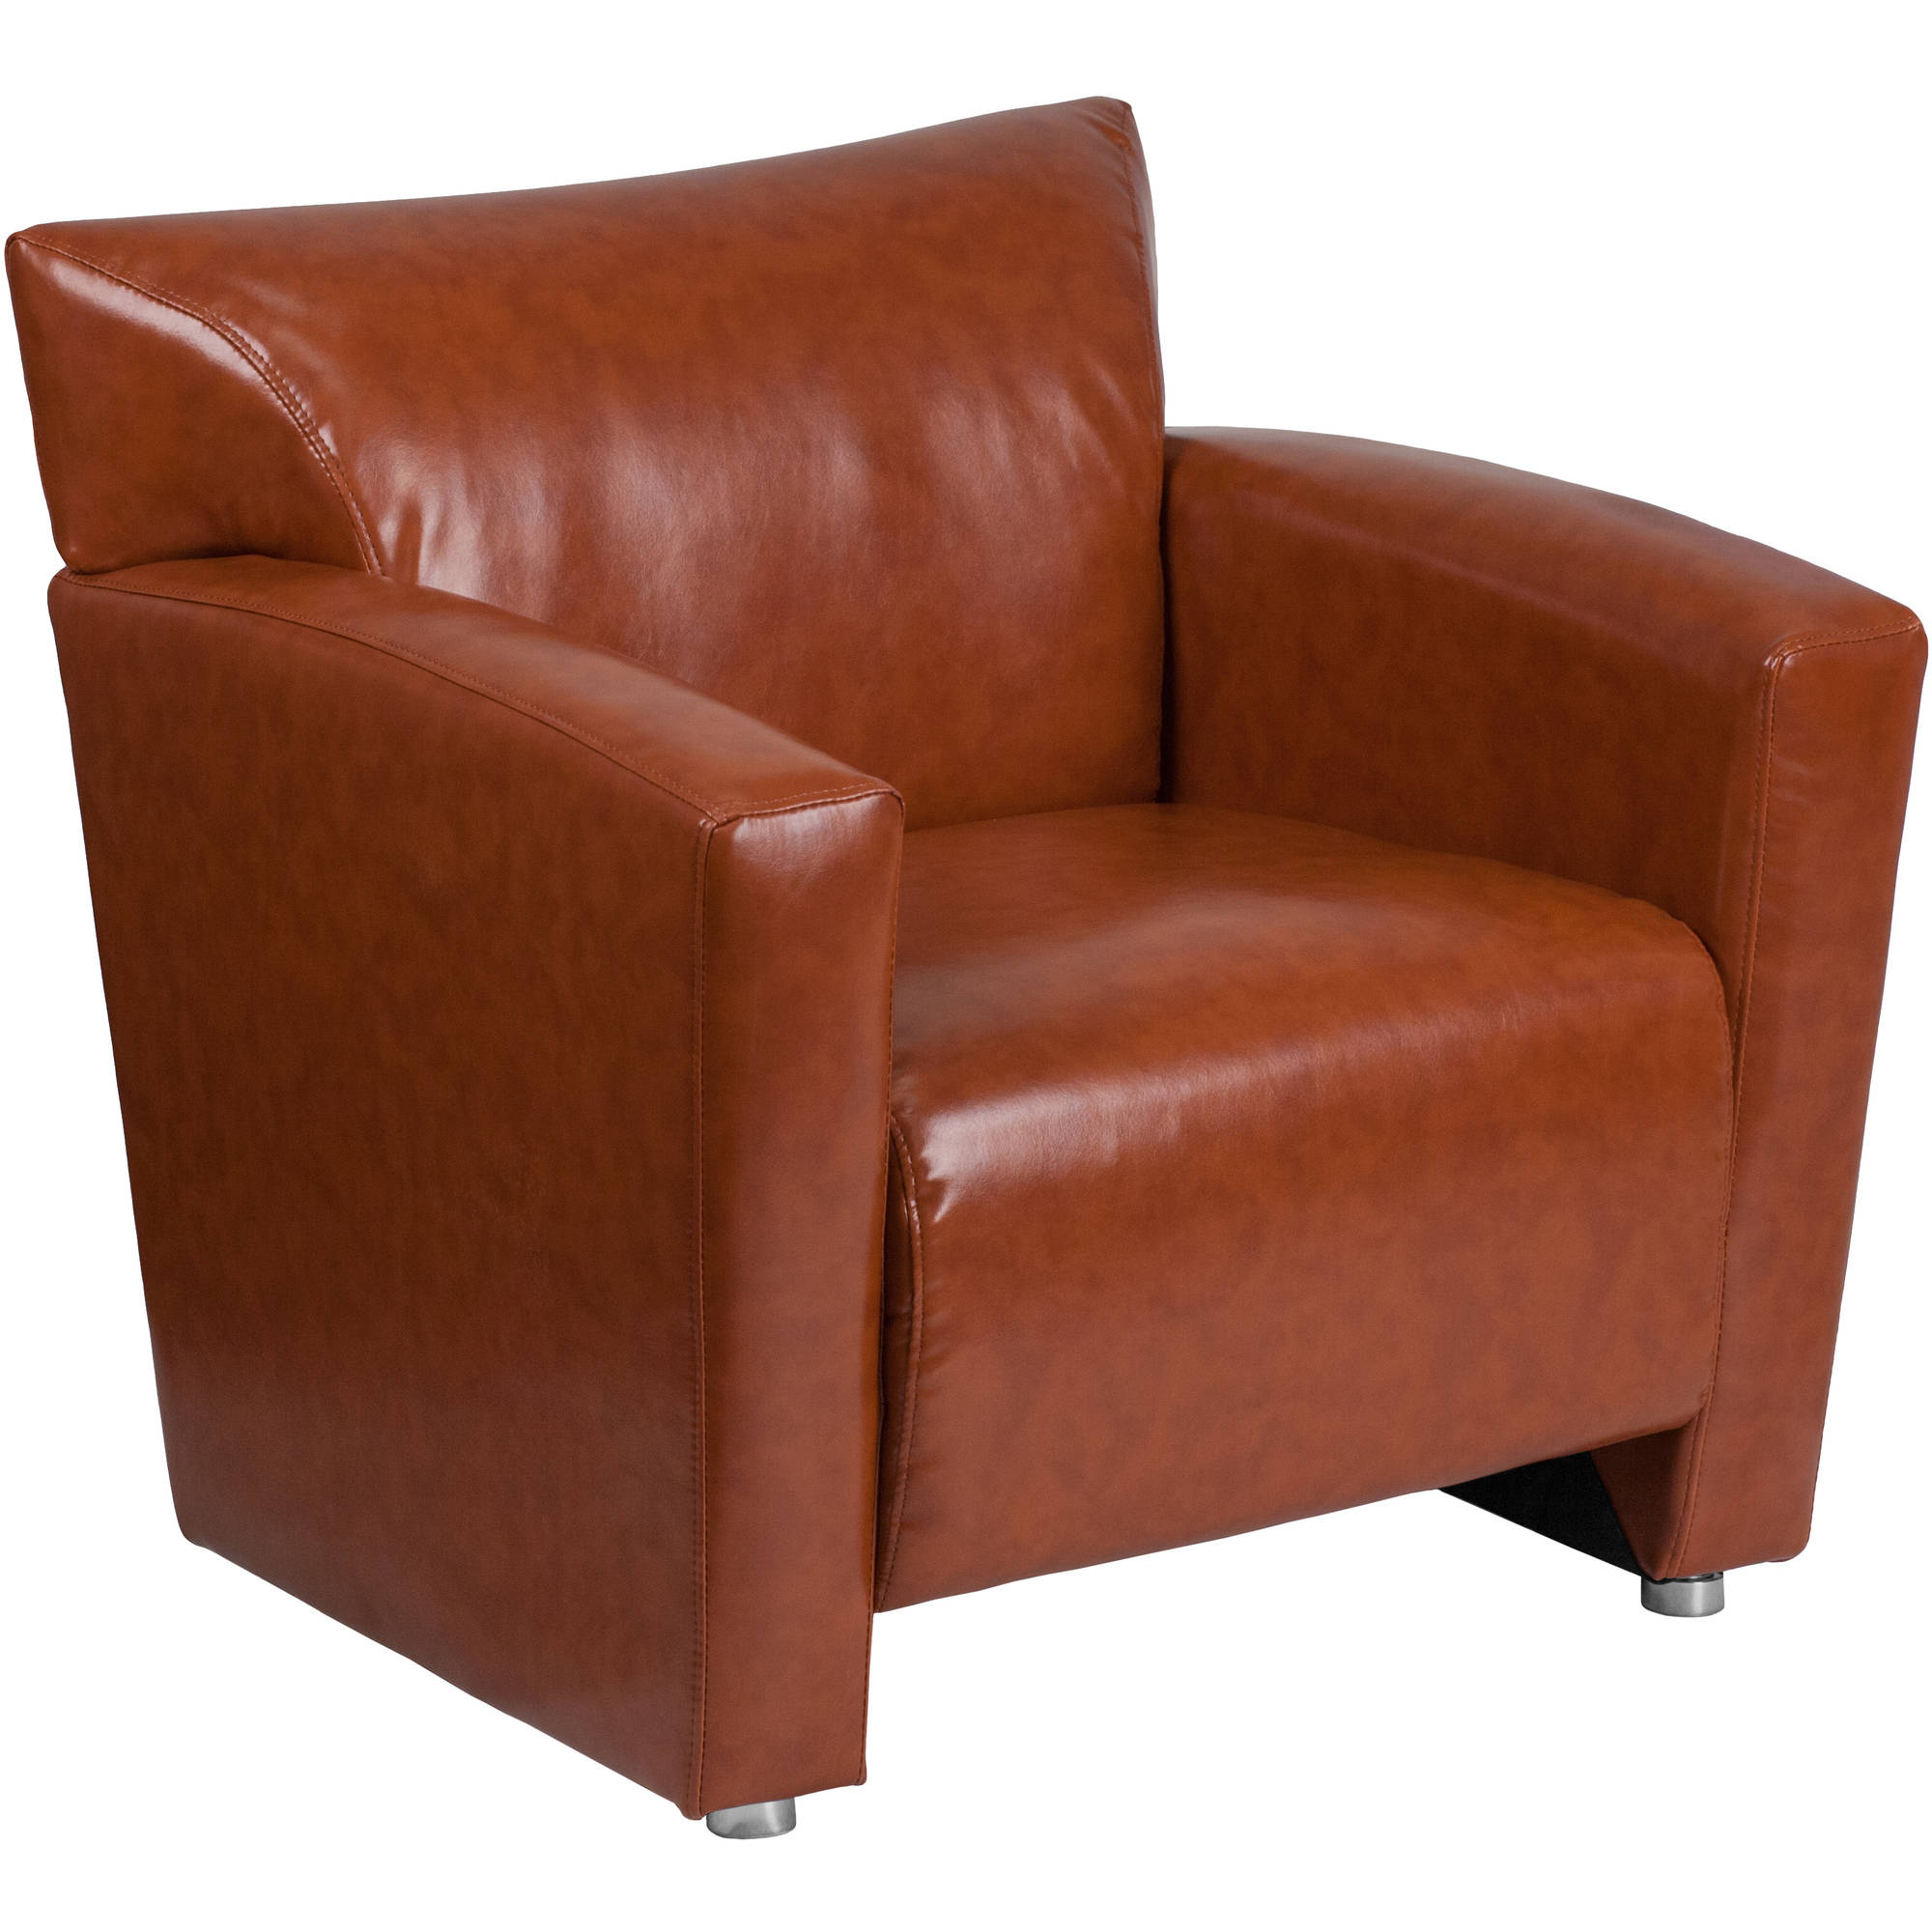 Flash Furniture HERCULES Majesty Series Cognac Leather Chair